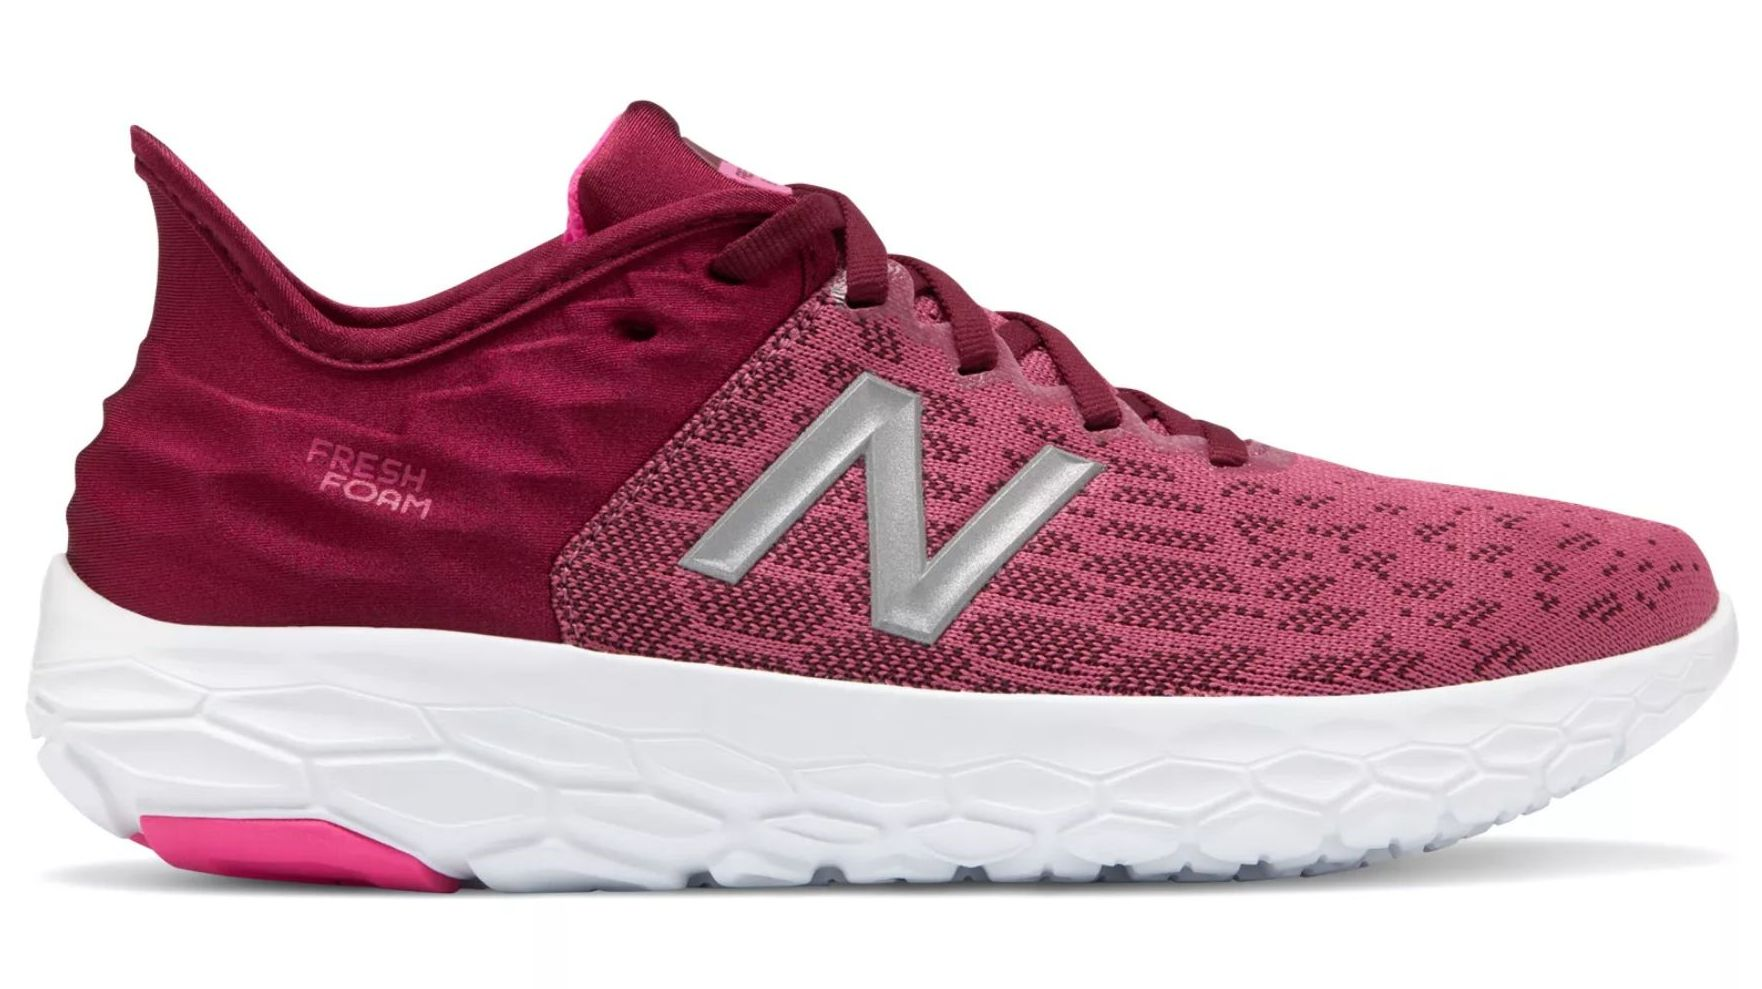 best sneakers ad686 dda44 Best New Balance Running Shoes | New Balance Shoe Reviews 2019